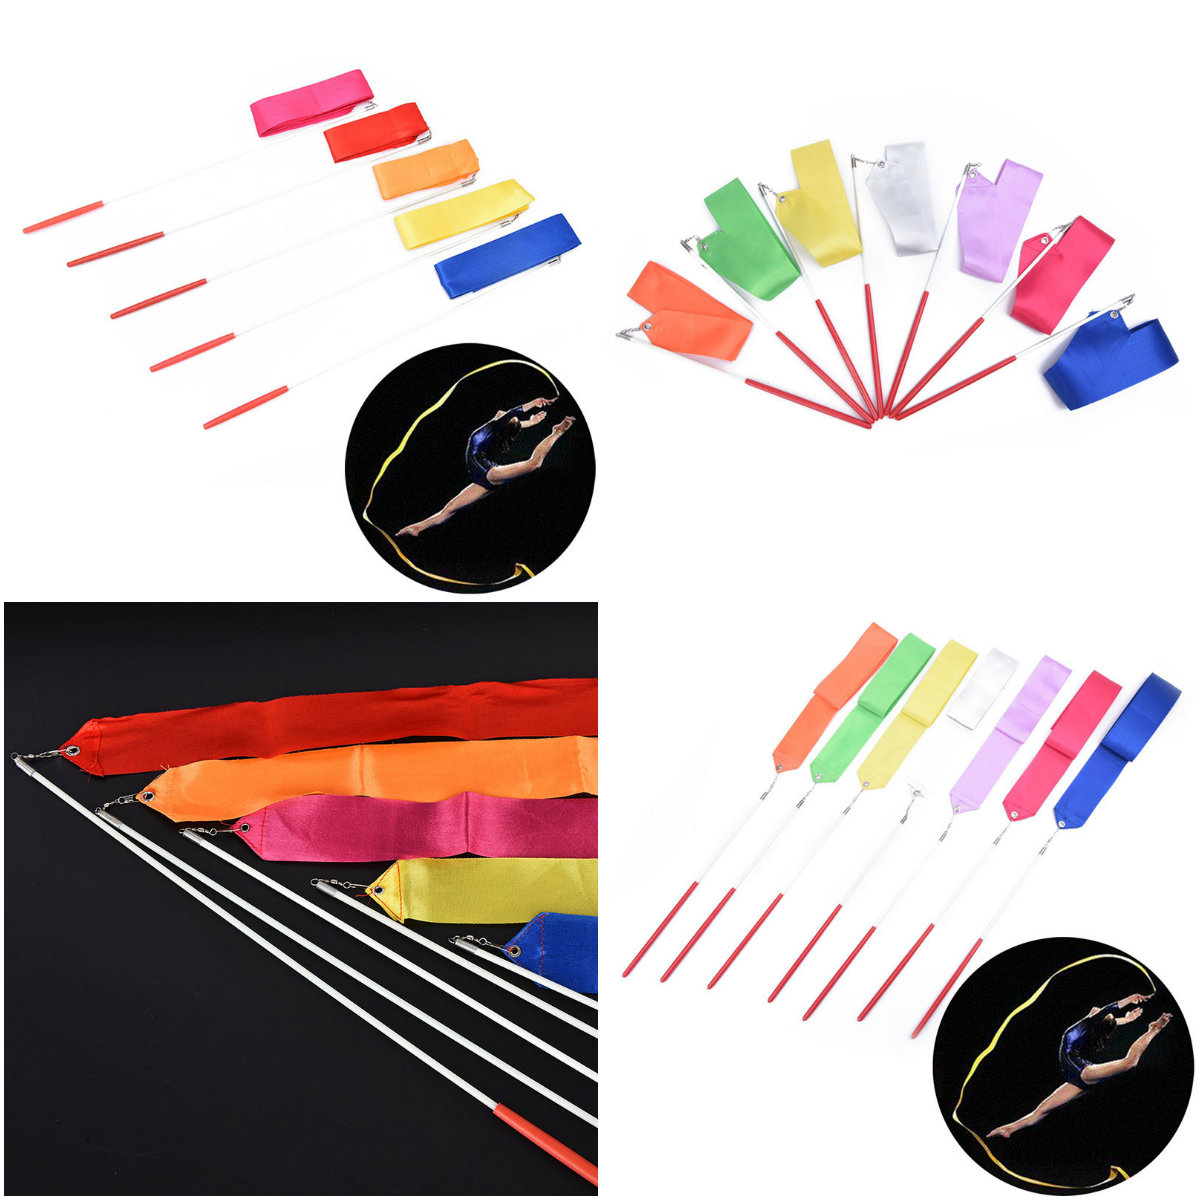 2M/4M Art Gymnastic Ballet Streamer Twirling Rod Stick For Gym Training Professional Colorful Gym Ribbons Dance Ribbon